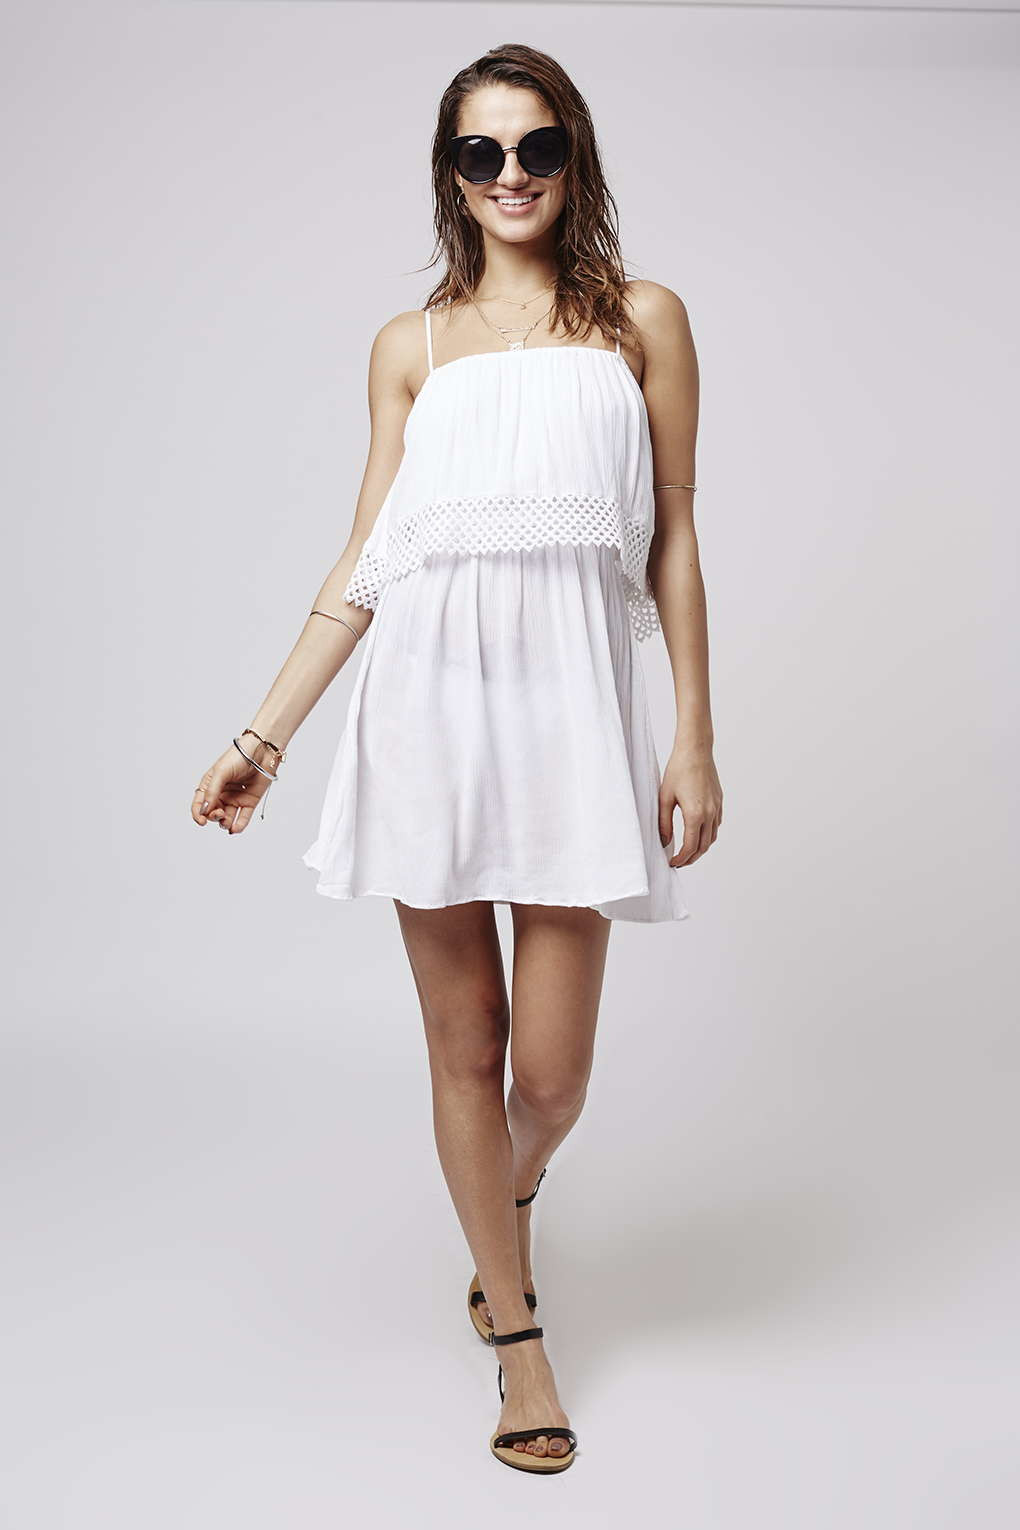 Topshop Crochet Overlay Sundress in White